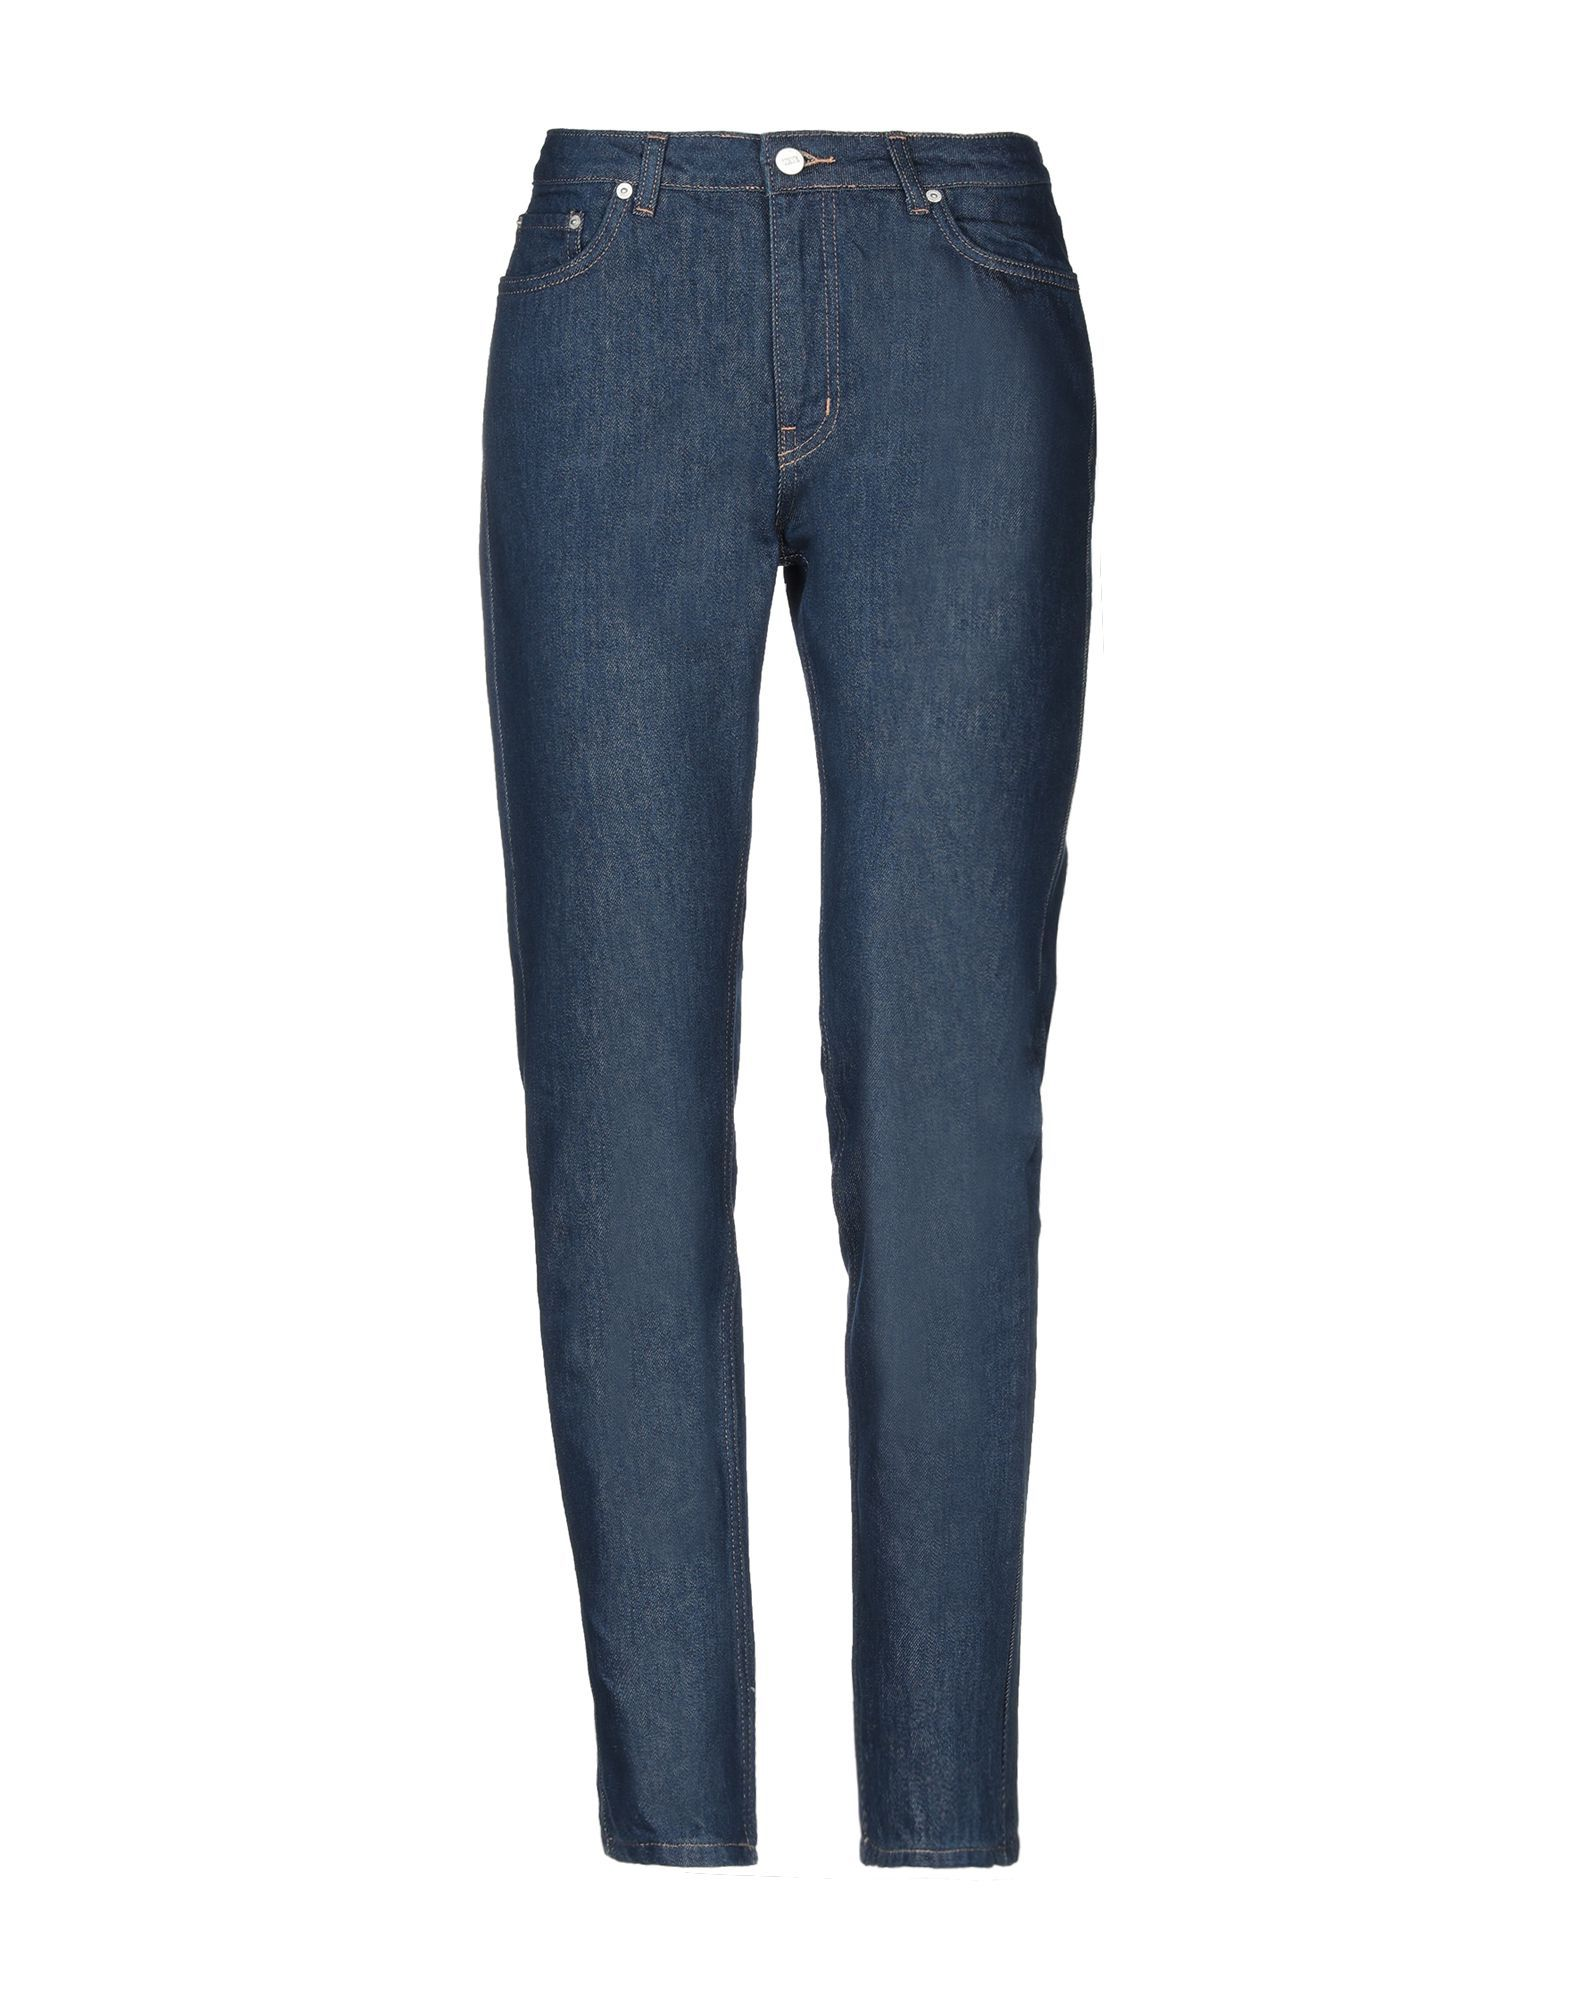 Wood Wood Blue Cotton Jeans